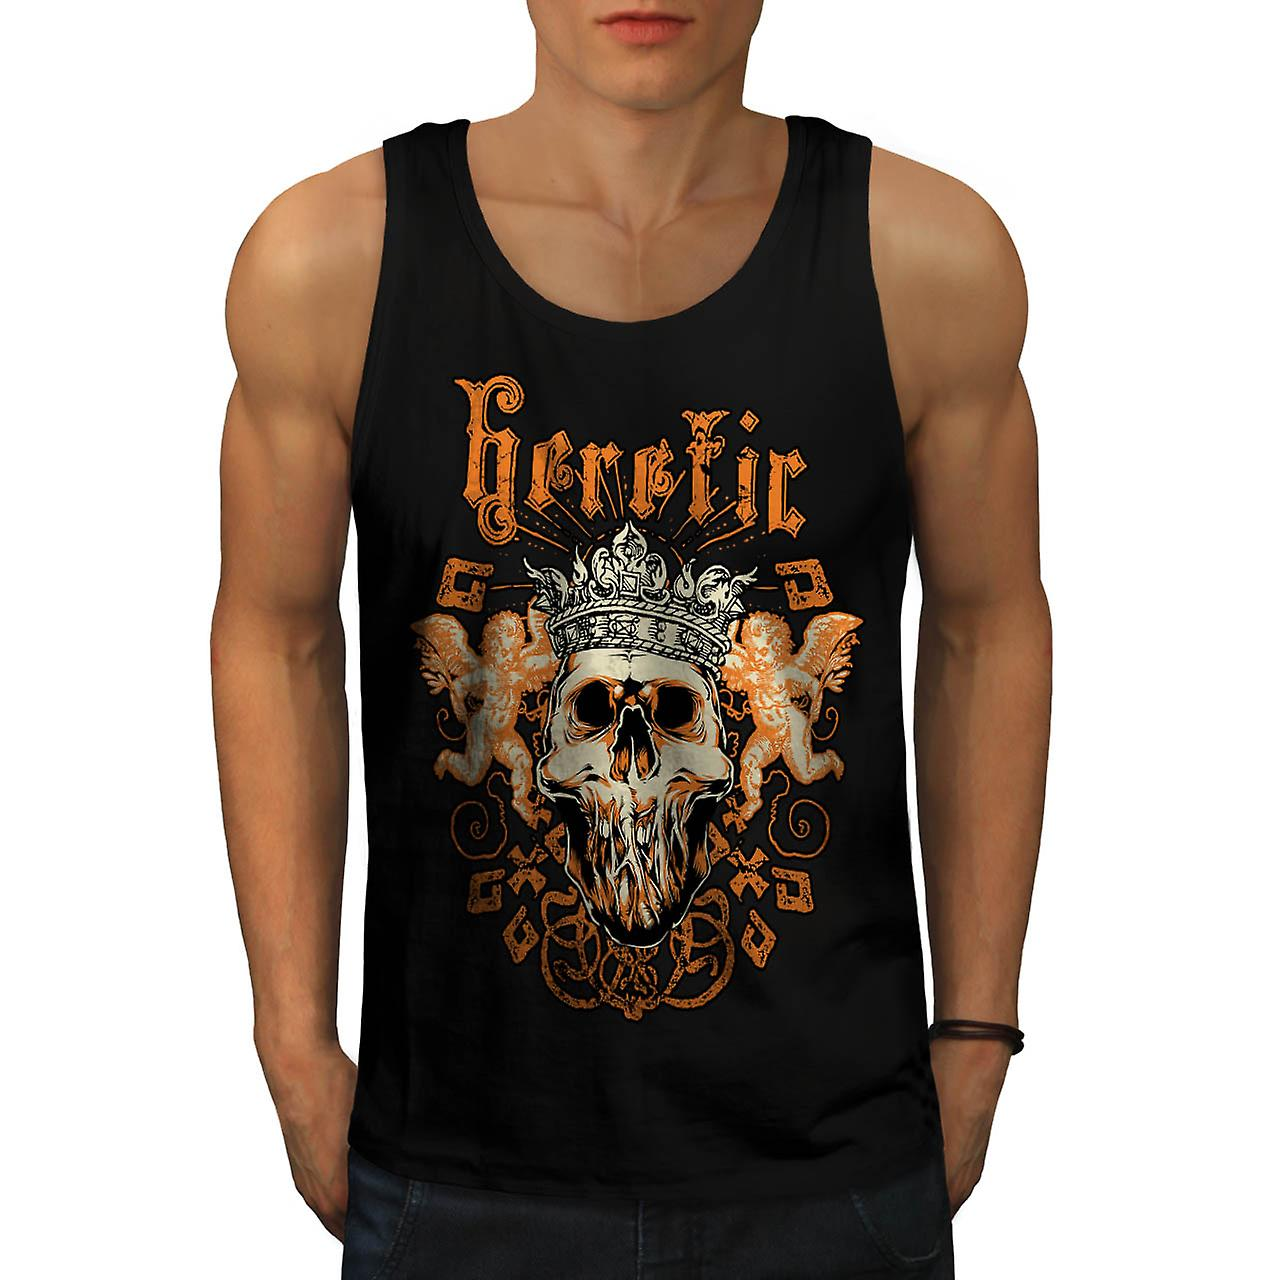 Ketter Monster King Skull Rage mannen Tank Top zwart | Wellcoda